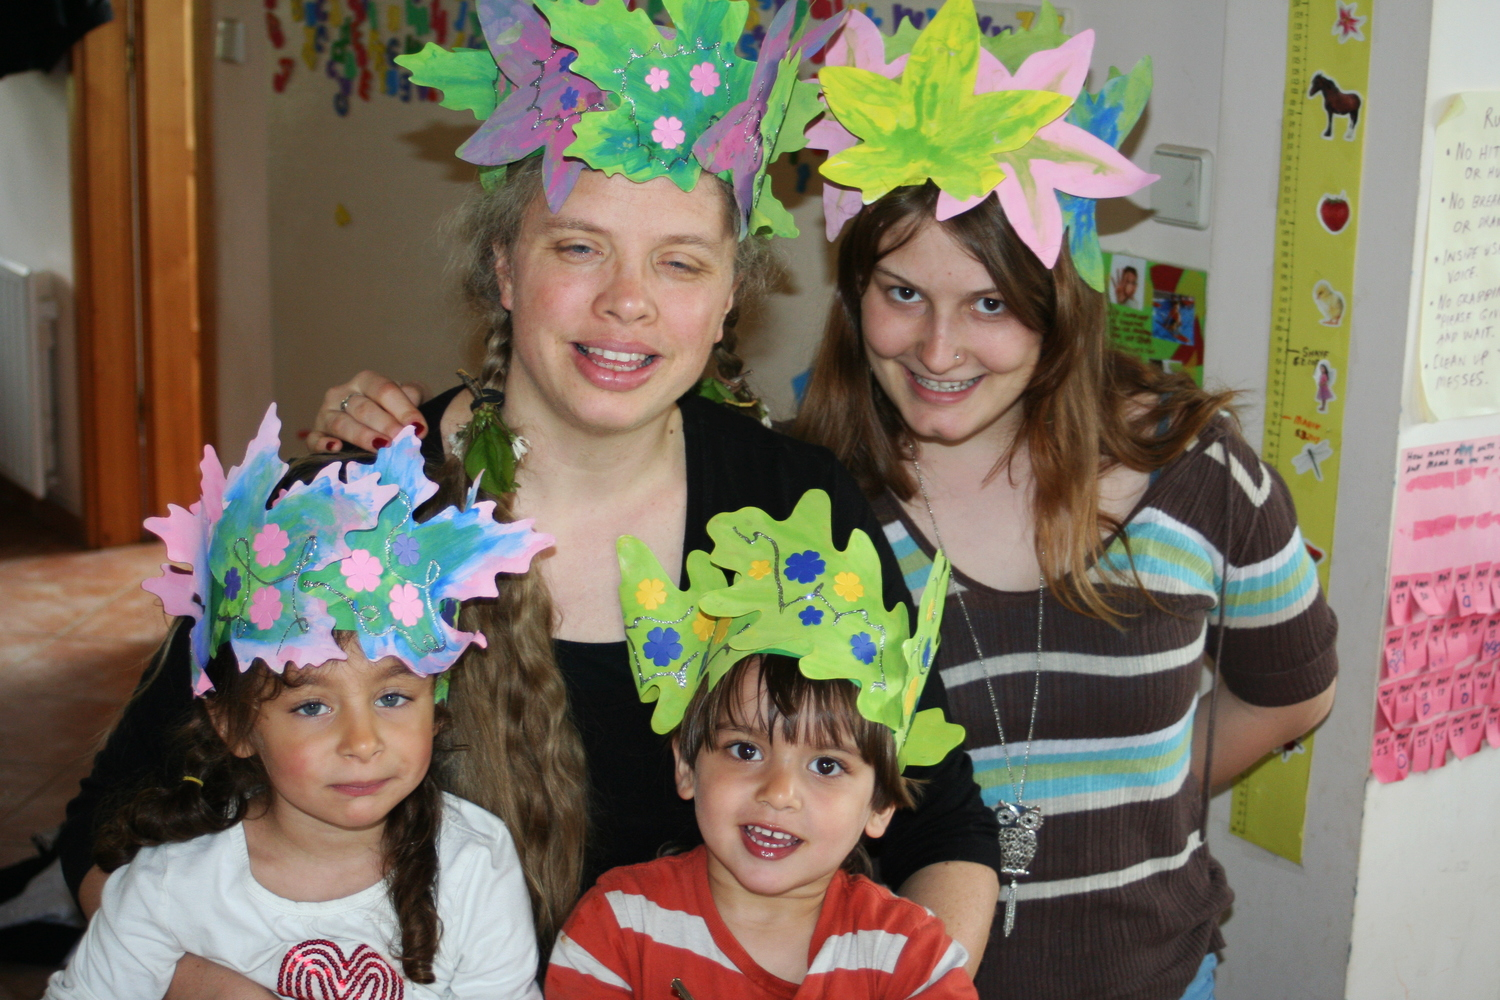 Leaf crowns for Beltane